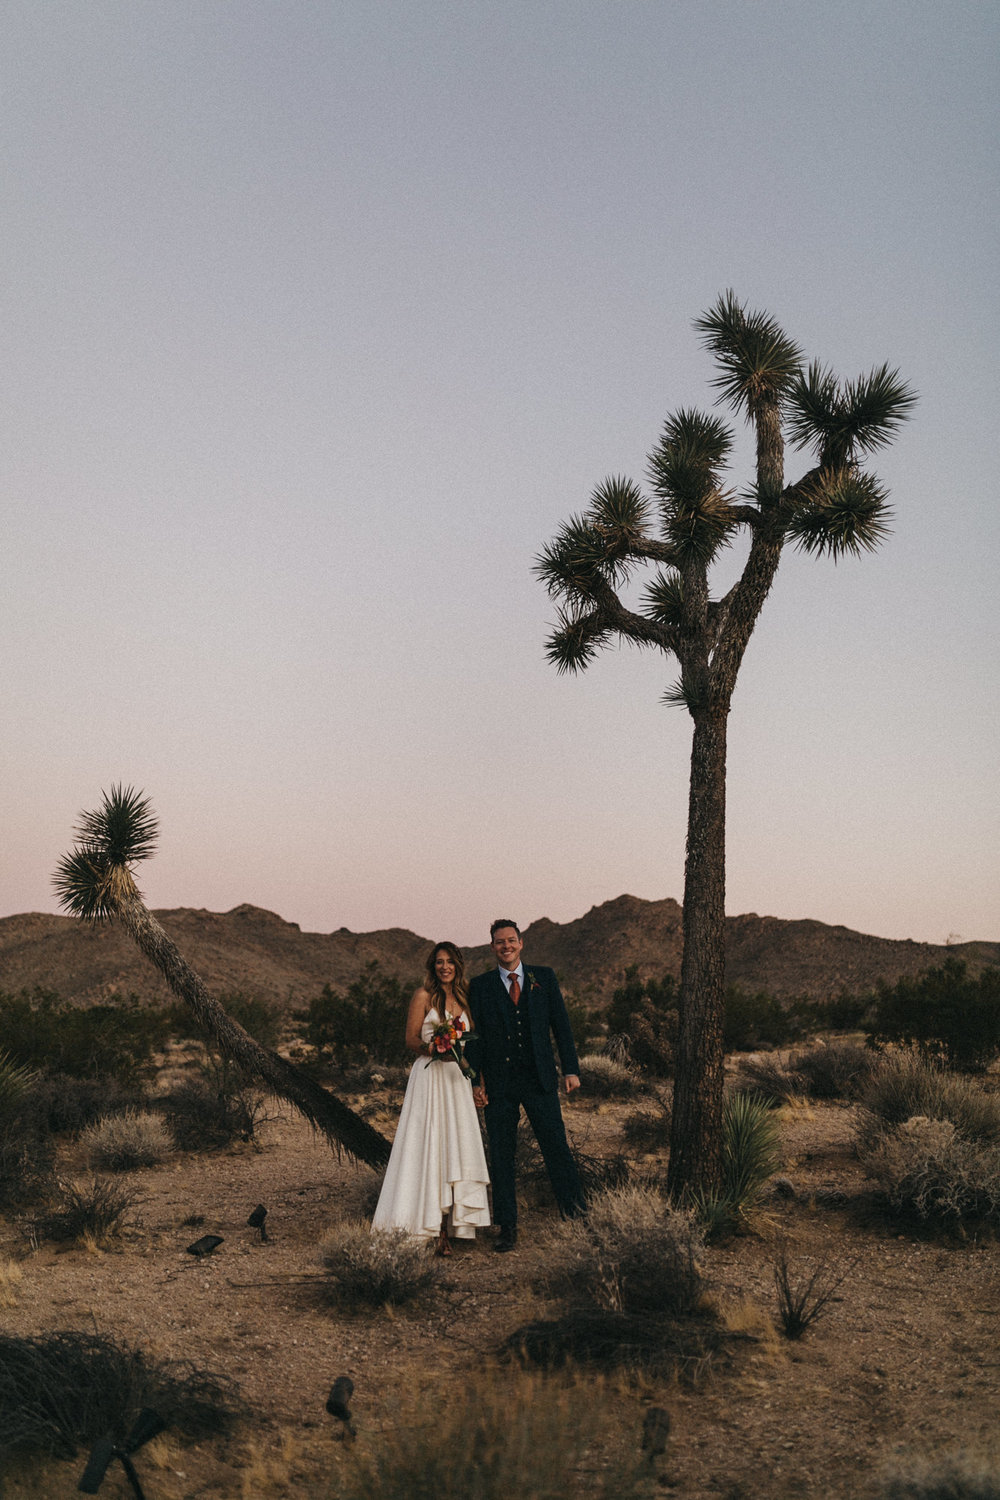 sacred_sands_joshua_tree_wedding-72.jpg